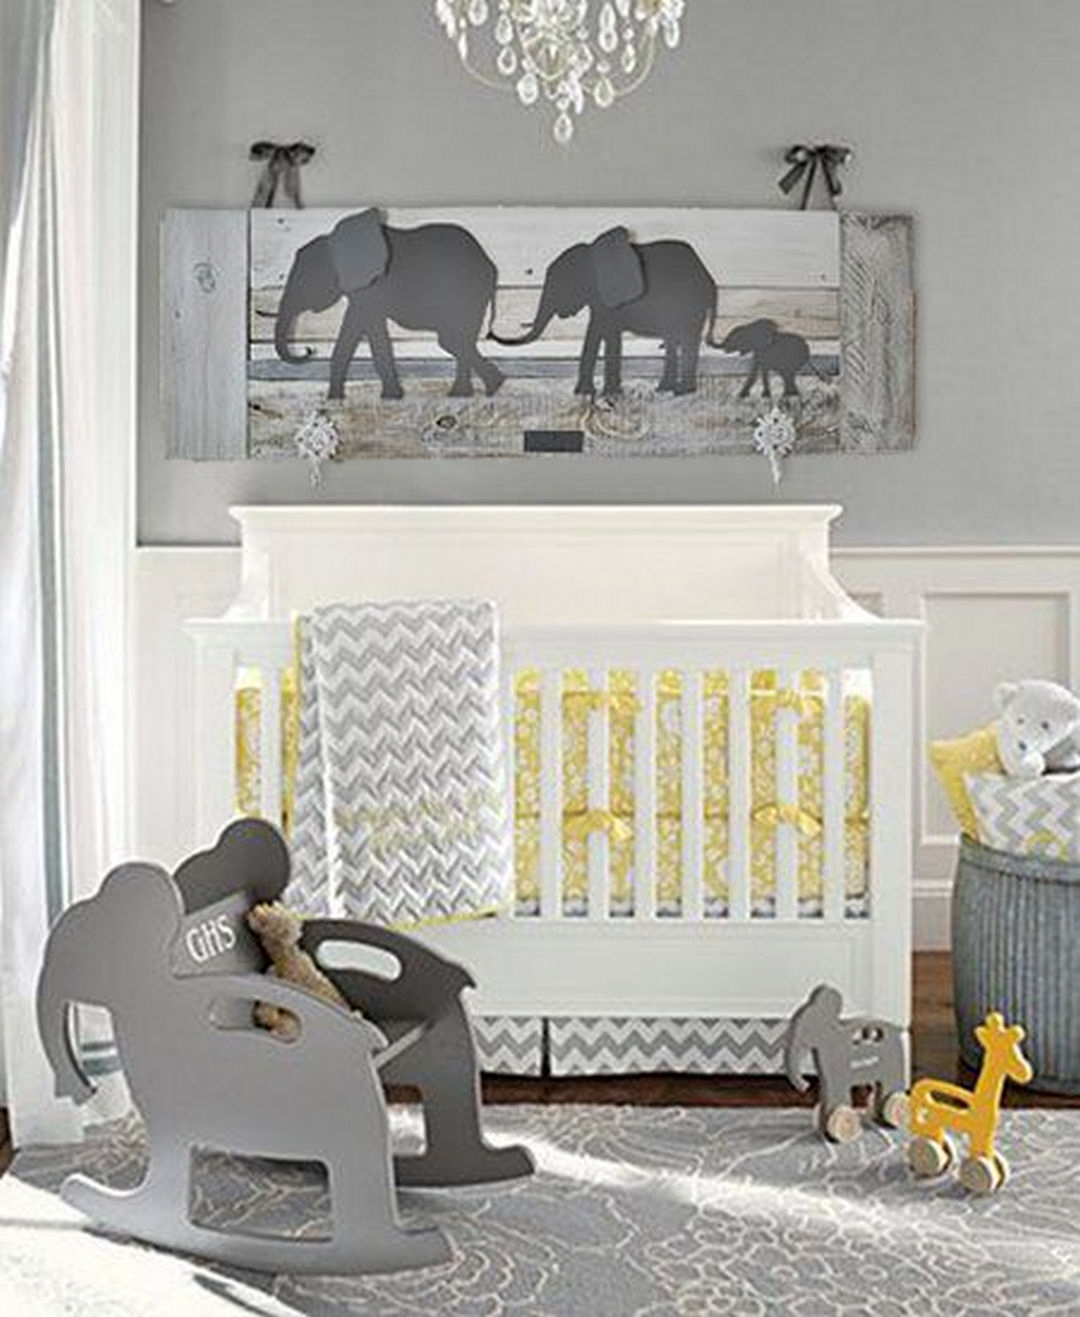 Best Baby Nursery Room Decor Ideas 62 Adorable Photos Https Www Futuristarchitecture 16208 Html